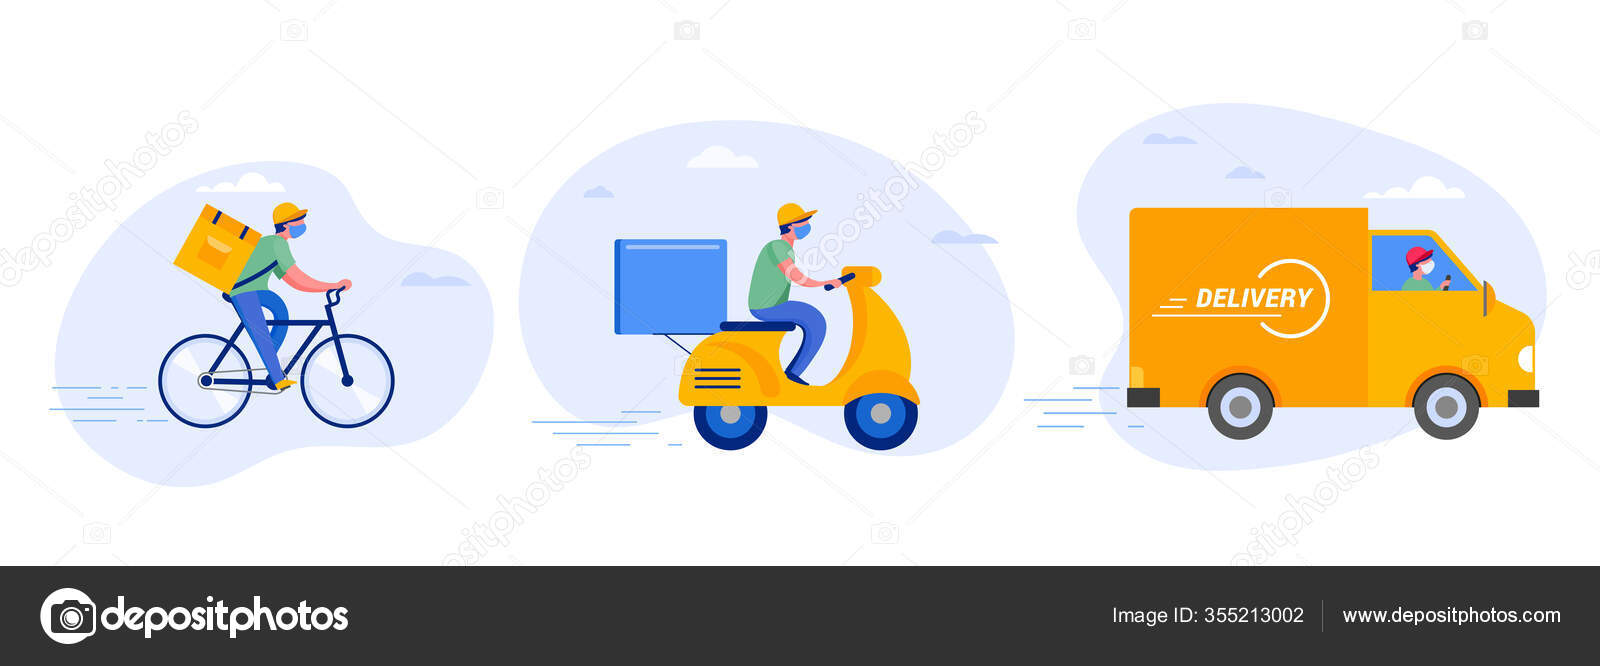 Online Delivery Service Concept Online Order Tracking Delivery Home And Office Warehouse Truck Drone Scooter And Bicycle Courier Delivery Man In Respiratory Mask Vector Illustration Stock Vector C Marish 355213002